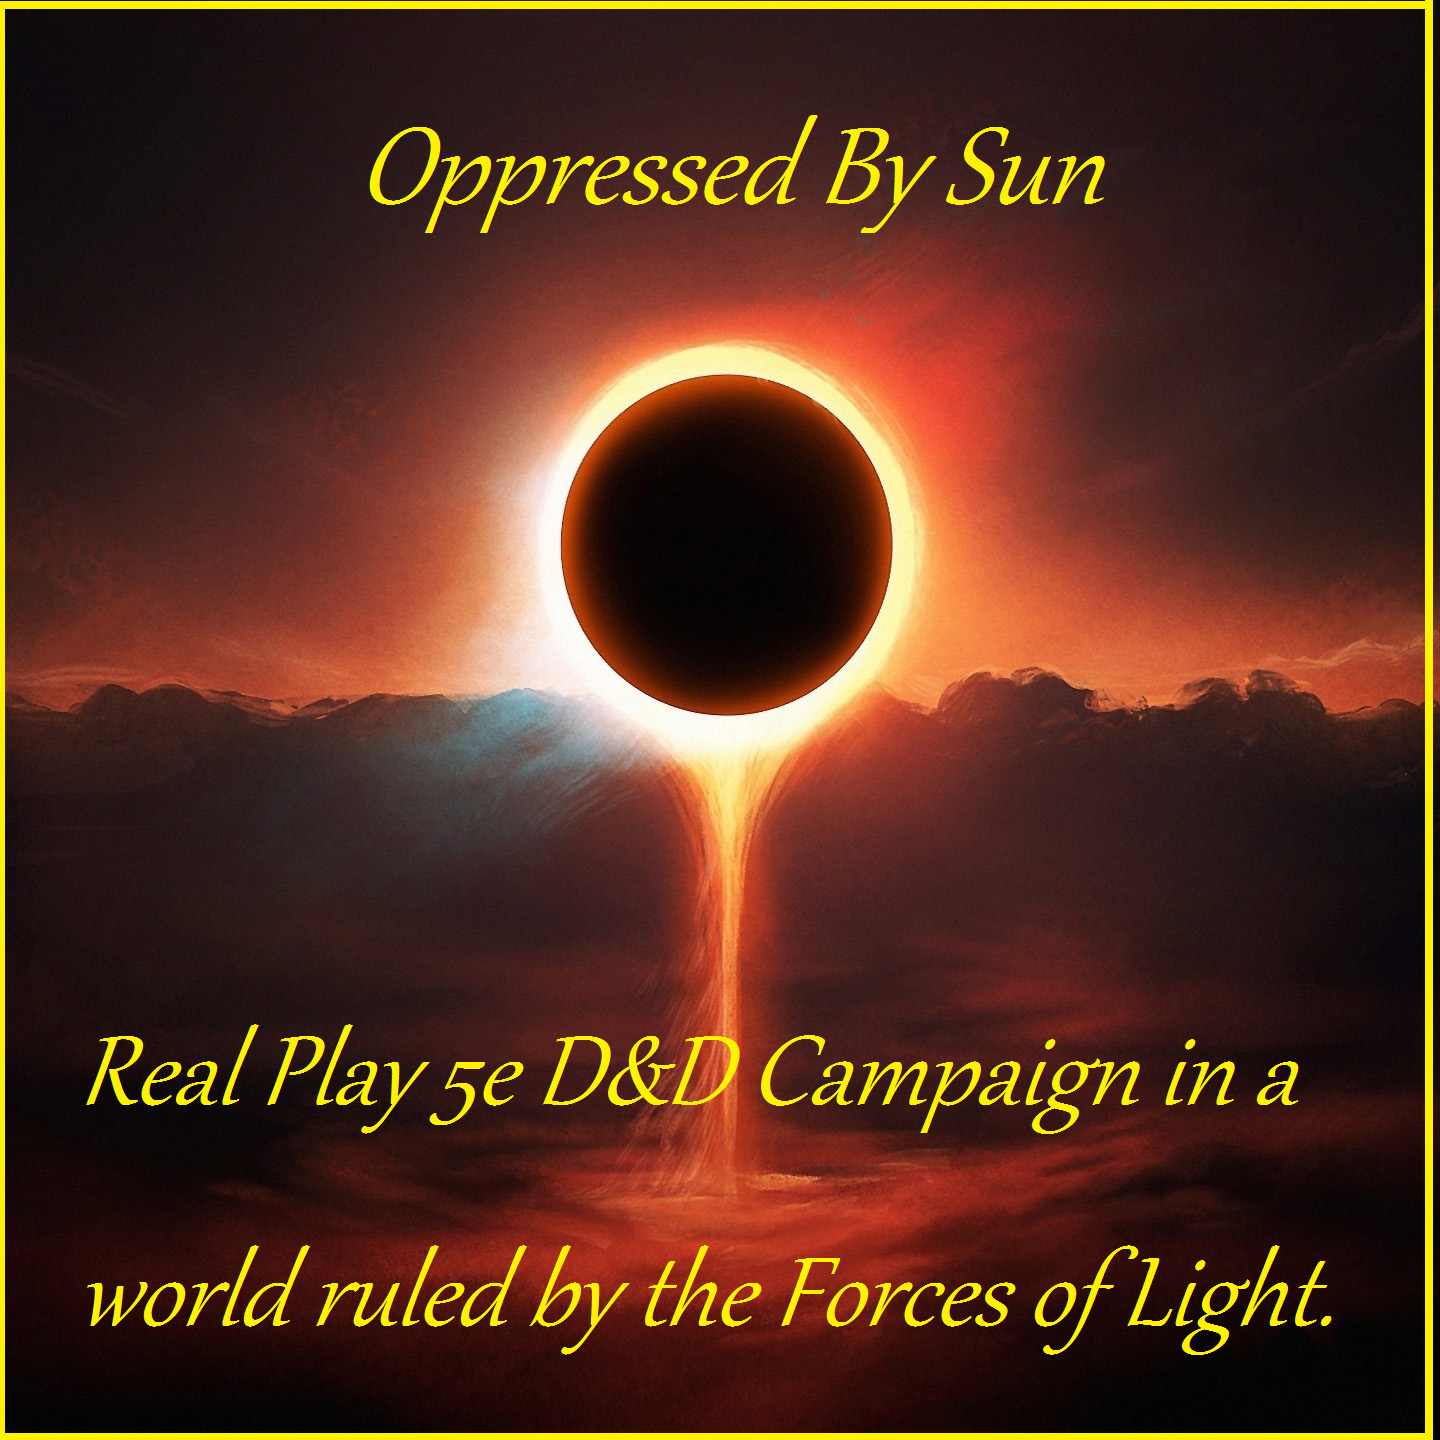 Oppressed By Sun: 5e Real Play D&D, Dungeons and Dragons Podcast